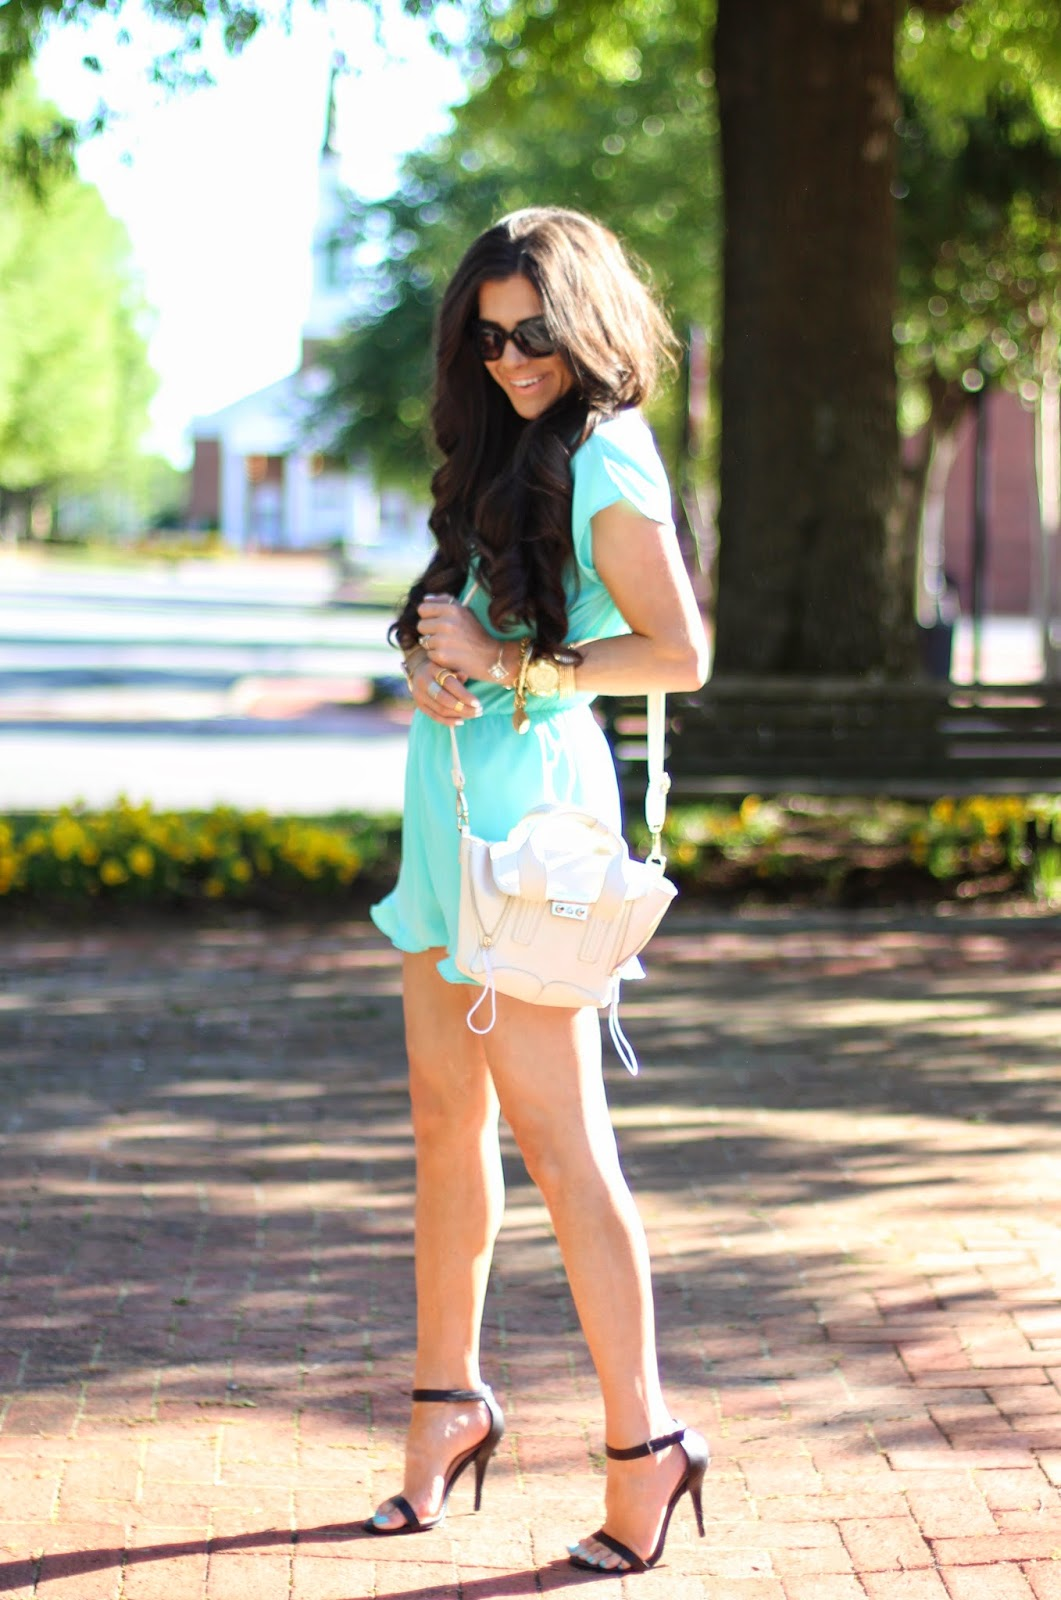 www.theSweetestthingblog.com, Emily Gemma, Blue Ruffle Romper, Romper with Ruffles, Baby Blue Romper, Shop Sosie Romper, Necessary Clothing Romper, White phillip lim bag, prima donna bags, Chanel cat eye sunglasses, pinterest summer and spring fashion 2014, pinterest summer outfits, zara nude sandals, nude strappy sandals, michele watch, bellami hair, mocha chino 22 inch extensions, hair extensions, michael kors runway watch, gorjana ring, sole society  ring, john windy bracelet